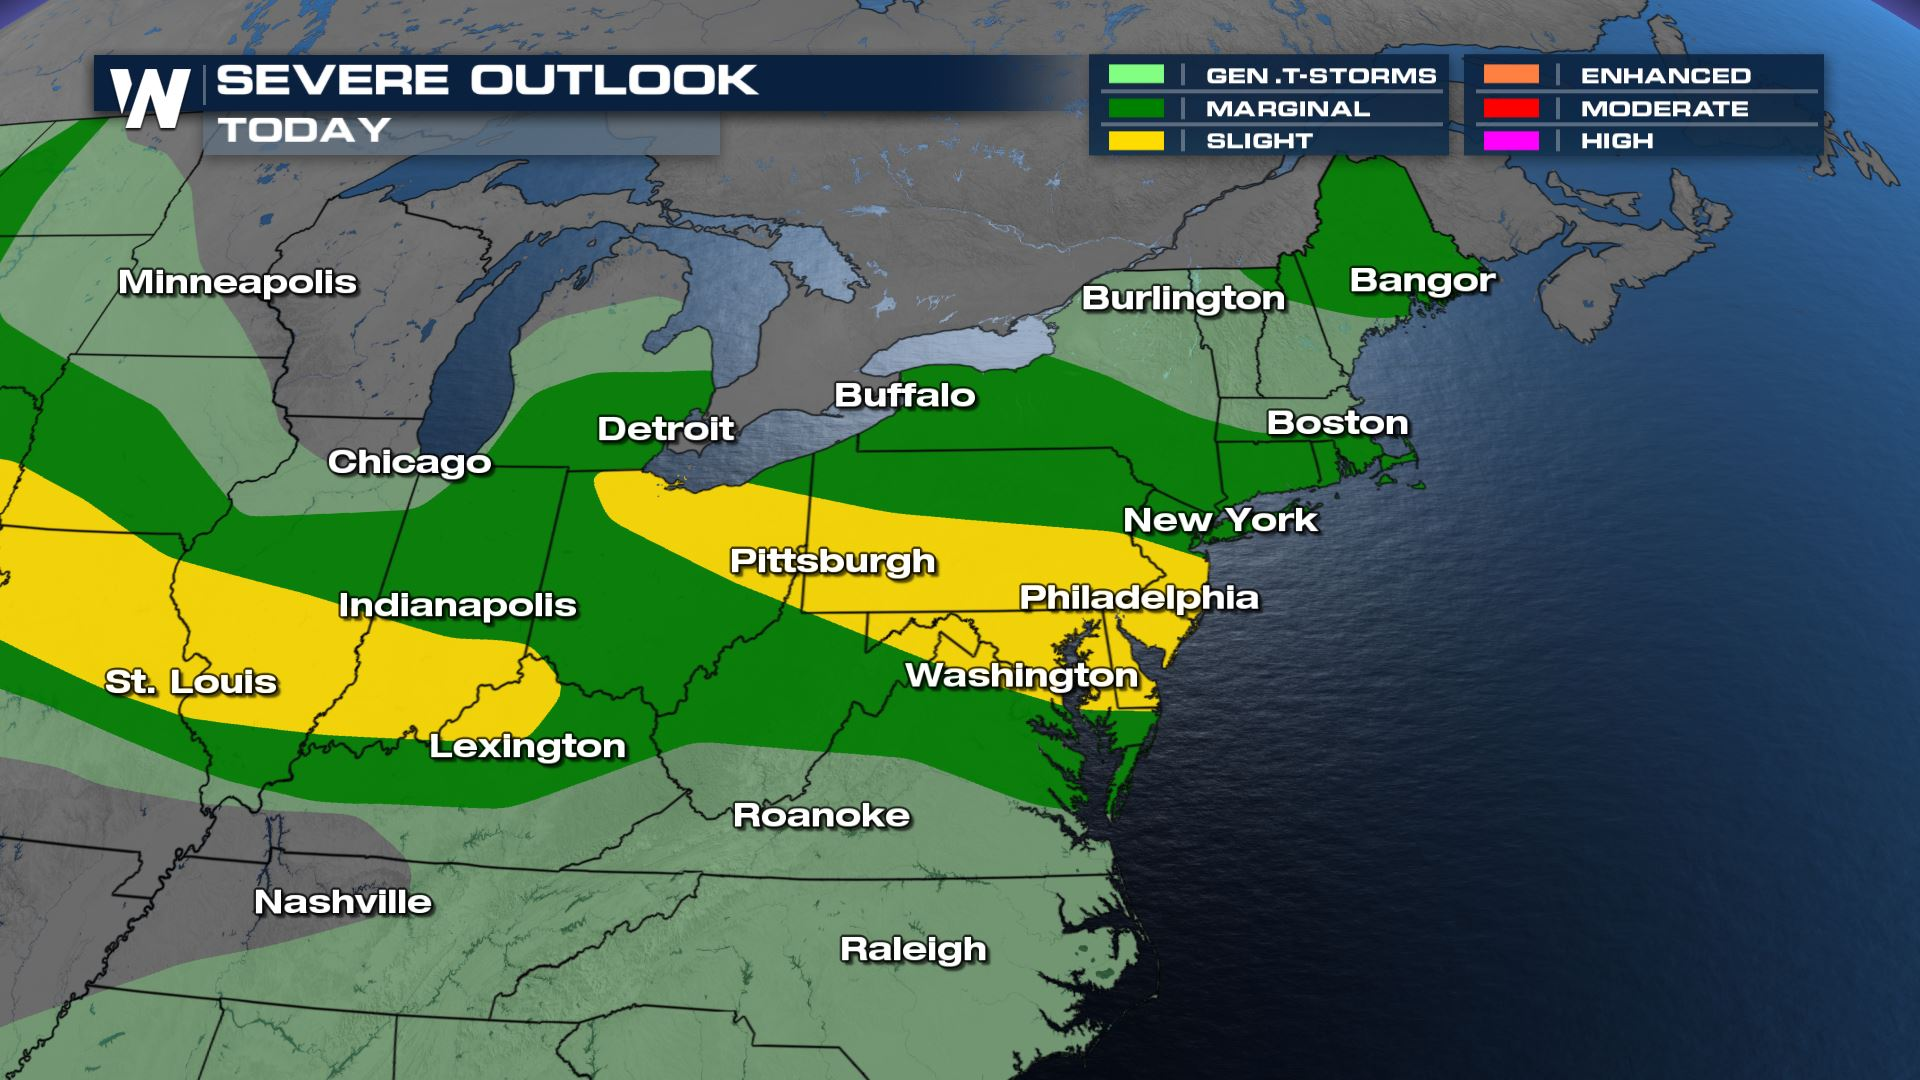 Severe Weather Threat for the Northeast Today